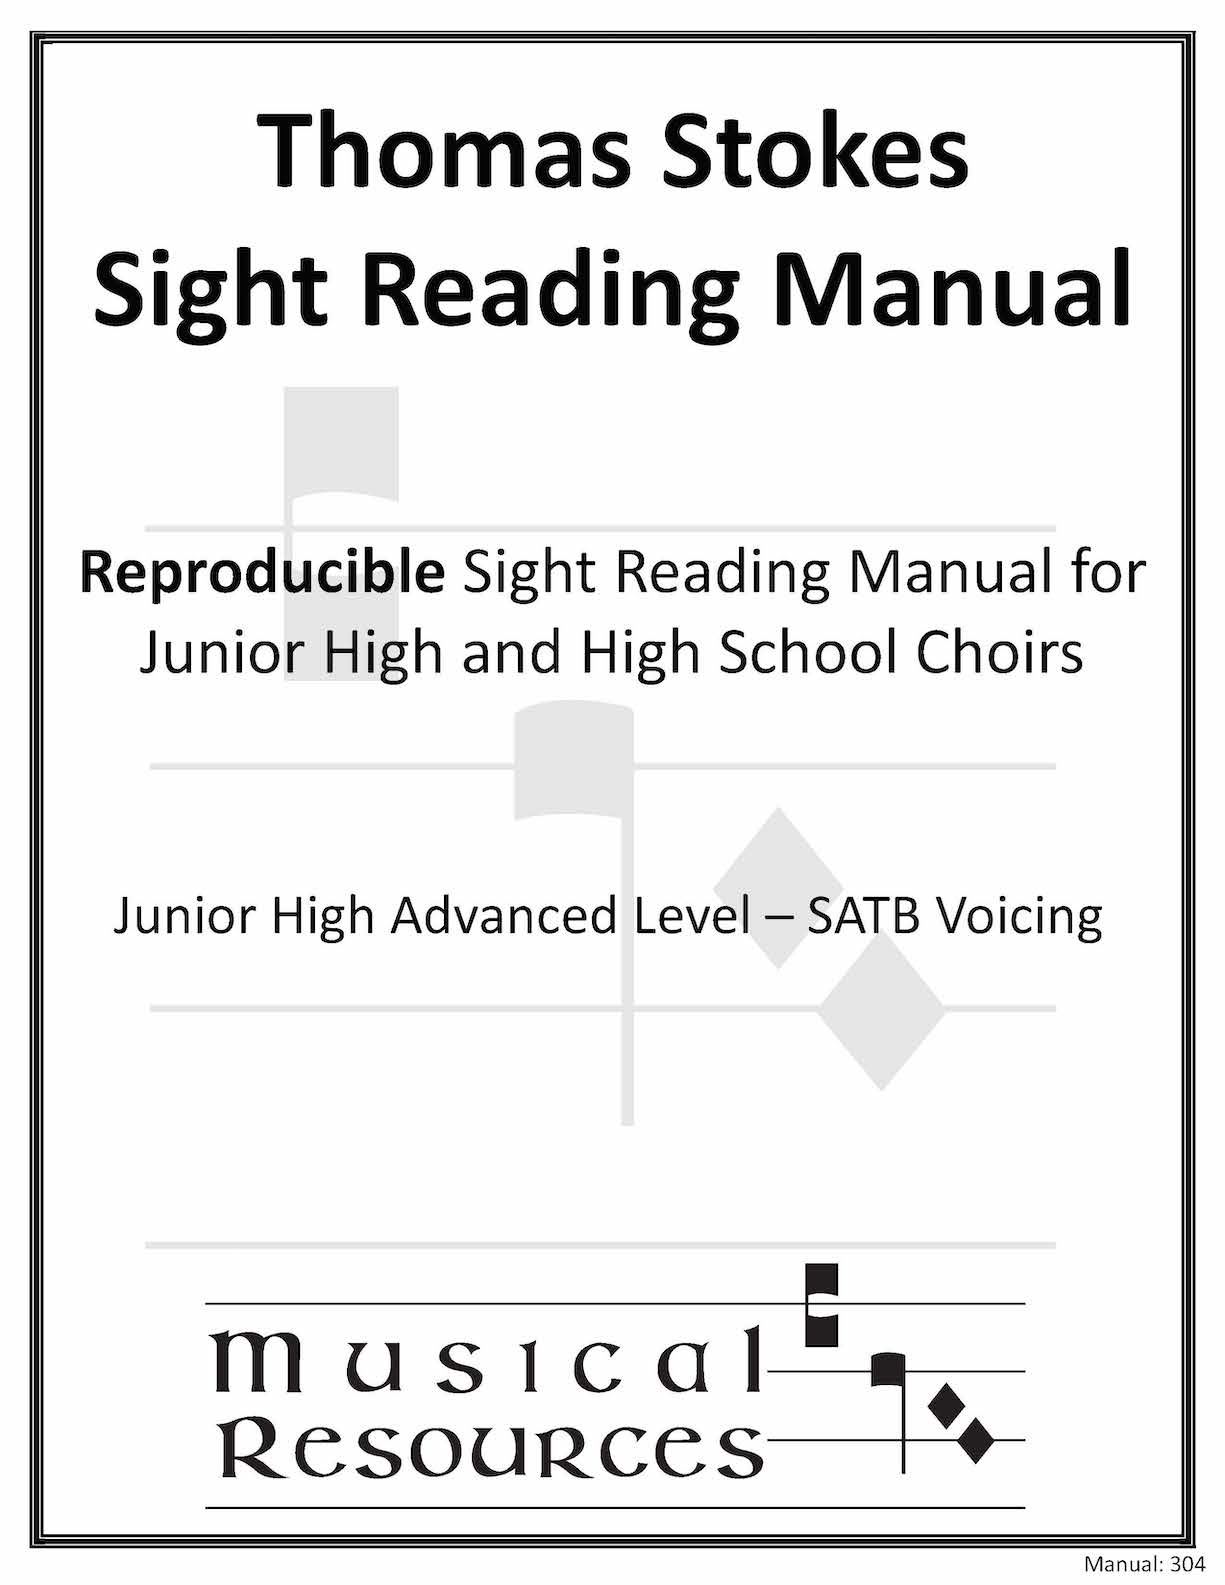 Picture of (Digital) Thomas Stokes Sightreading Manual #304 - SATB Junior High Advanced